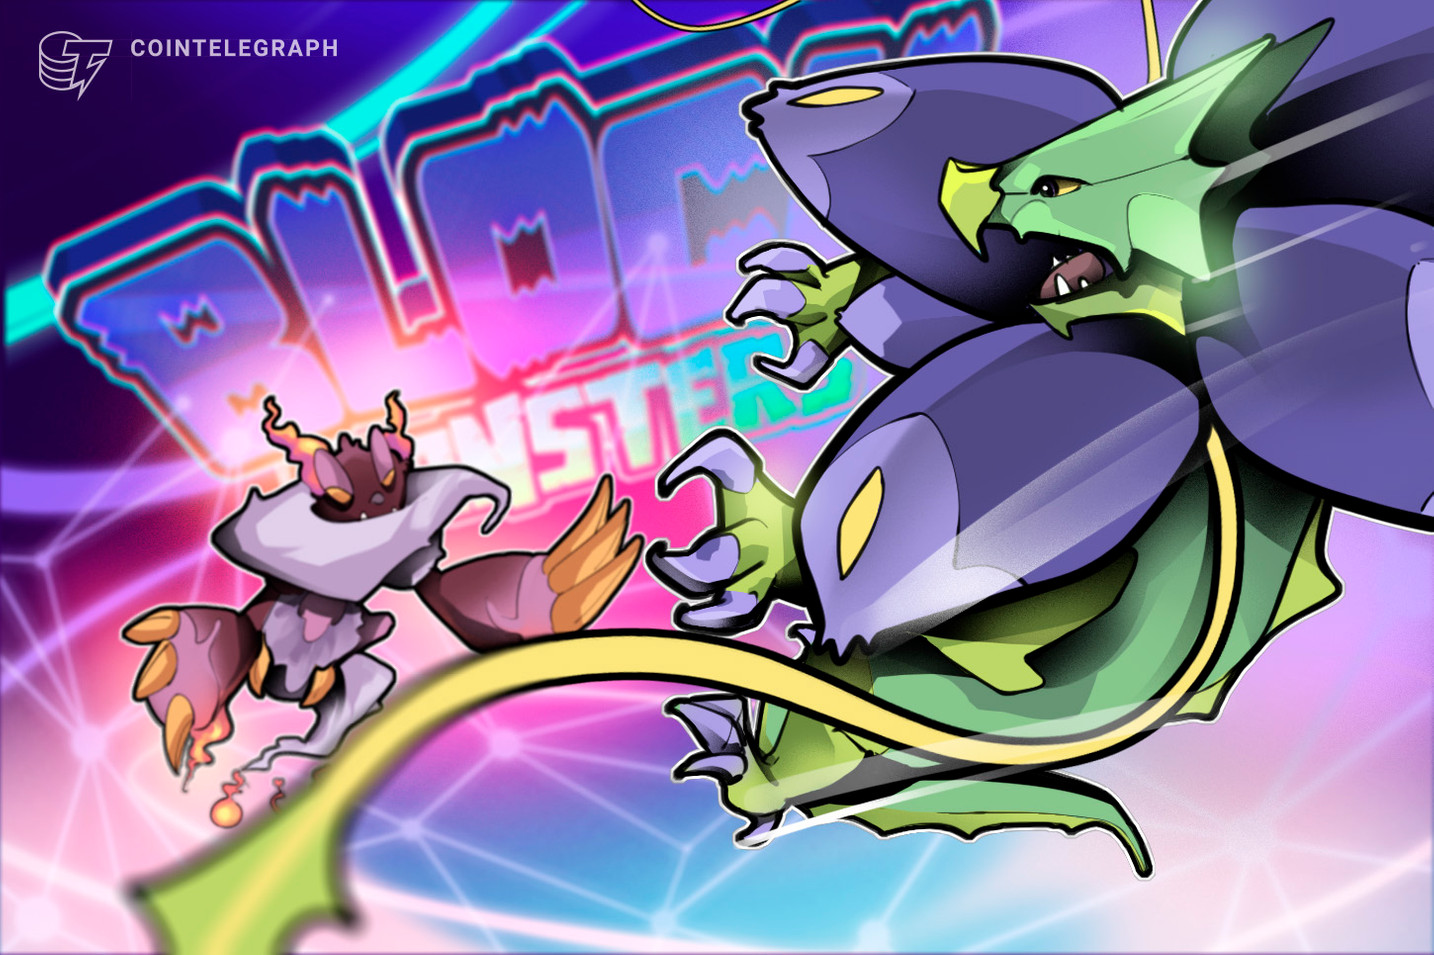 New play-to-earn NFT game ready to launch Booster packs that allow players to collect and battle NFT monsters